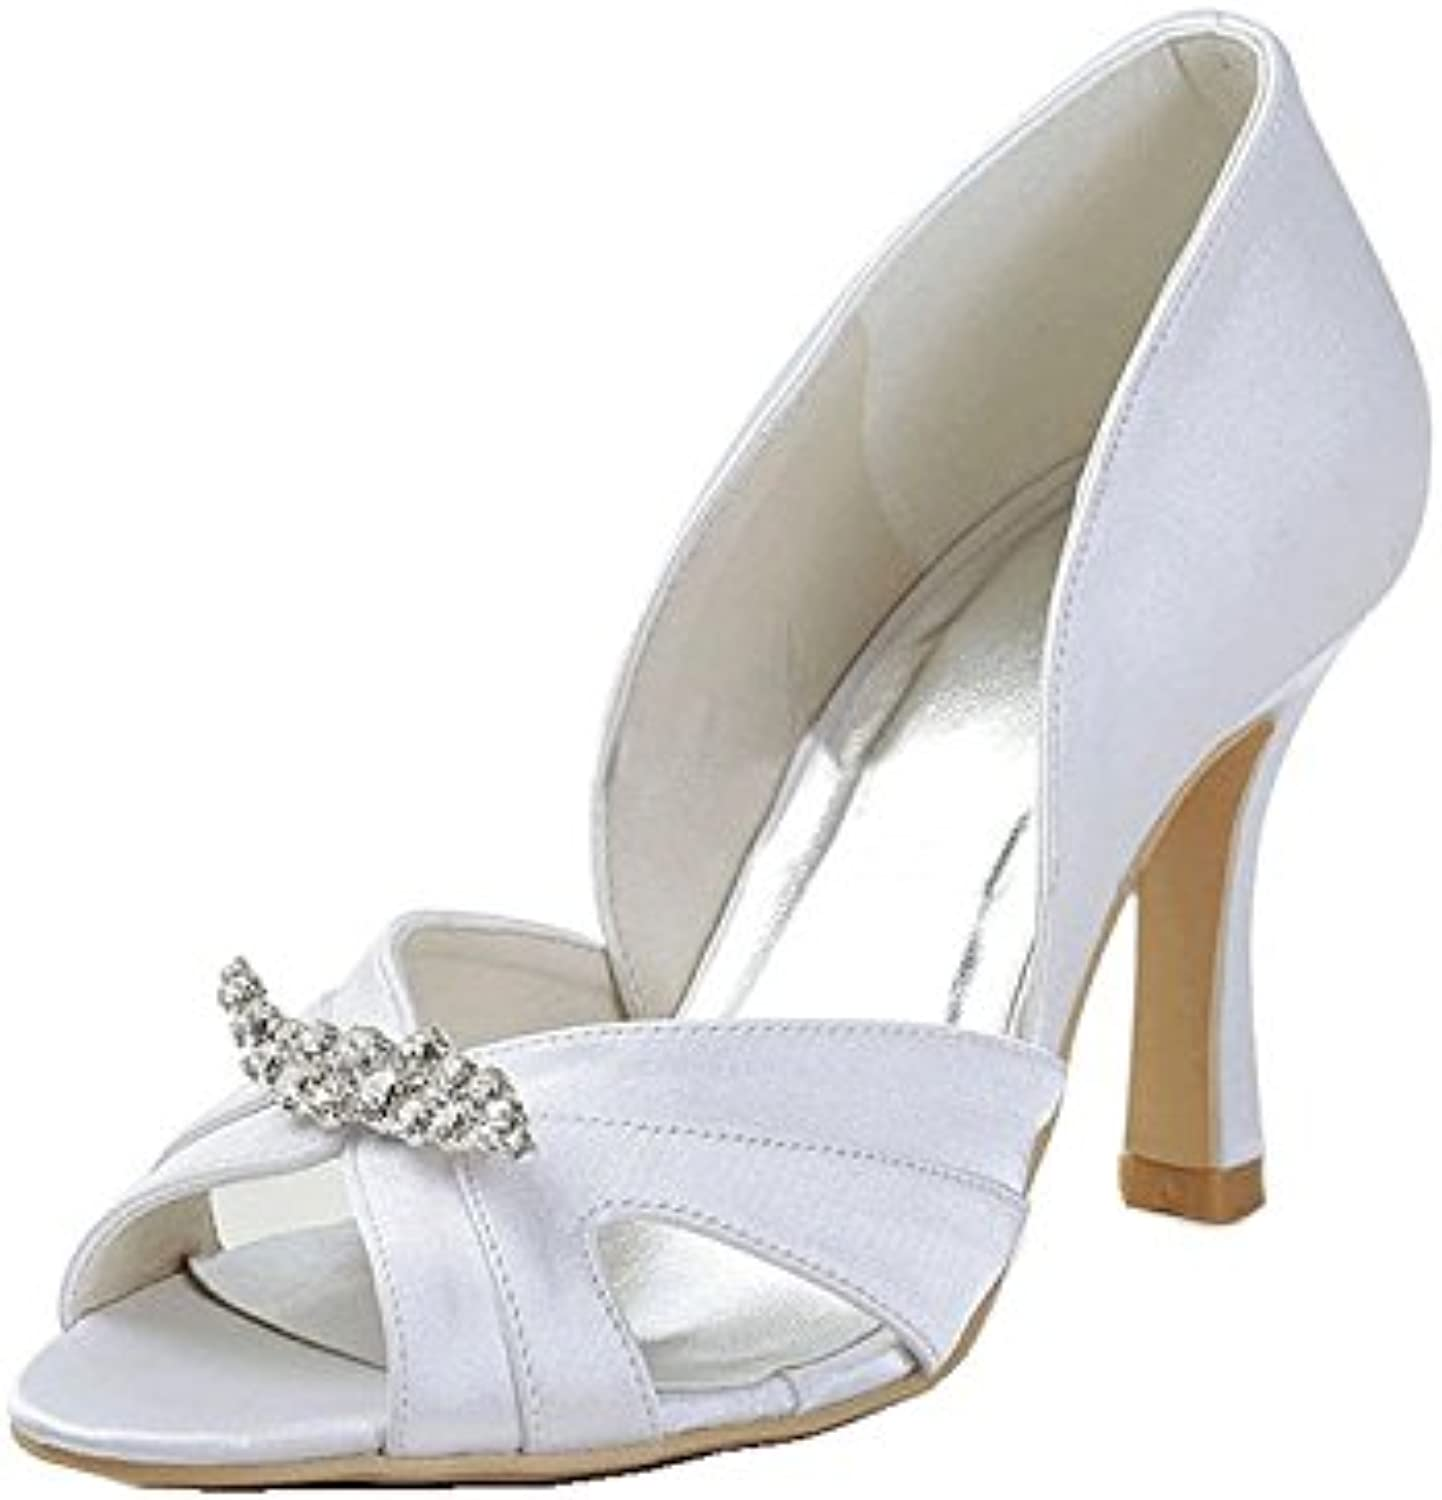 14690880bb19 Kevin Fashion MZ1216 Ladies Cut-out Cut-out Cut-out Satin Bridal Wedding  Formal Party Evening Prom Sandals B01D8T19B8 Parent cc6393